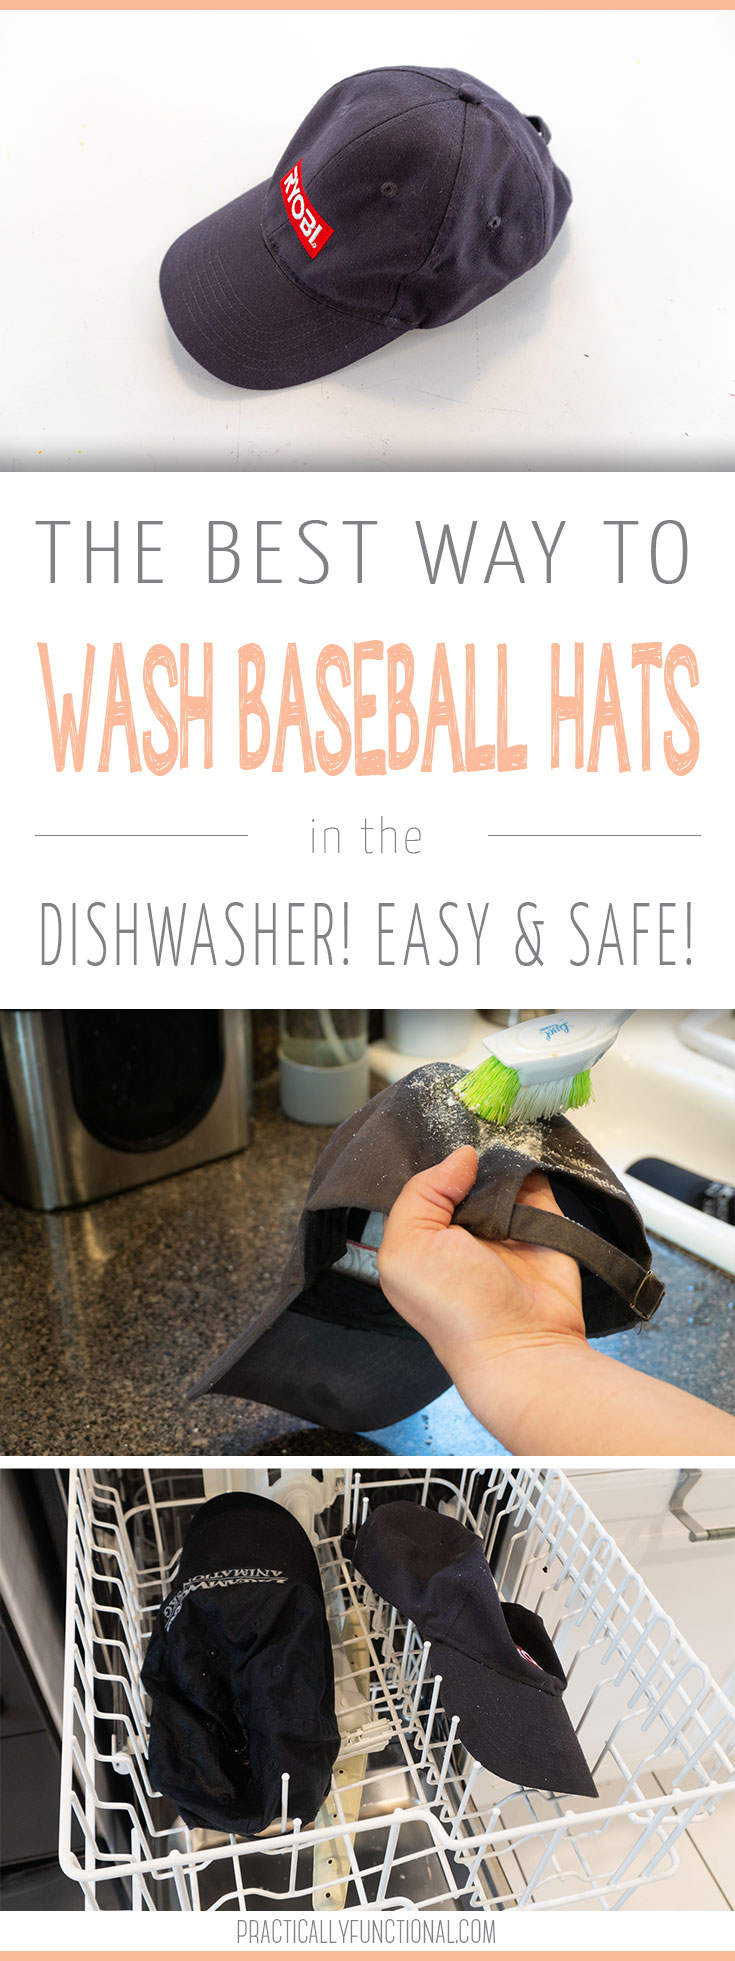 The best way to wash a baseball cap in the dishwasher easy